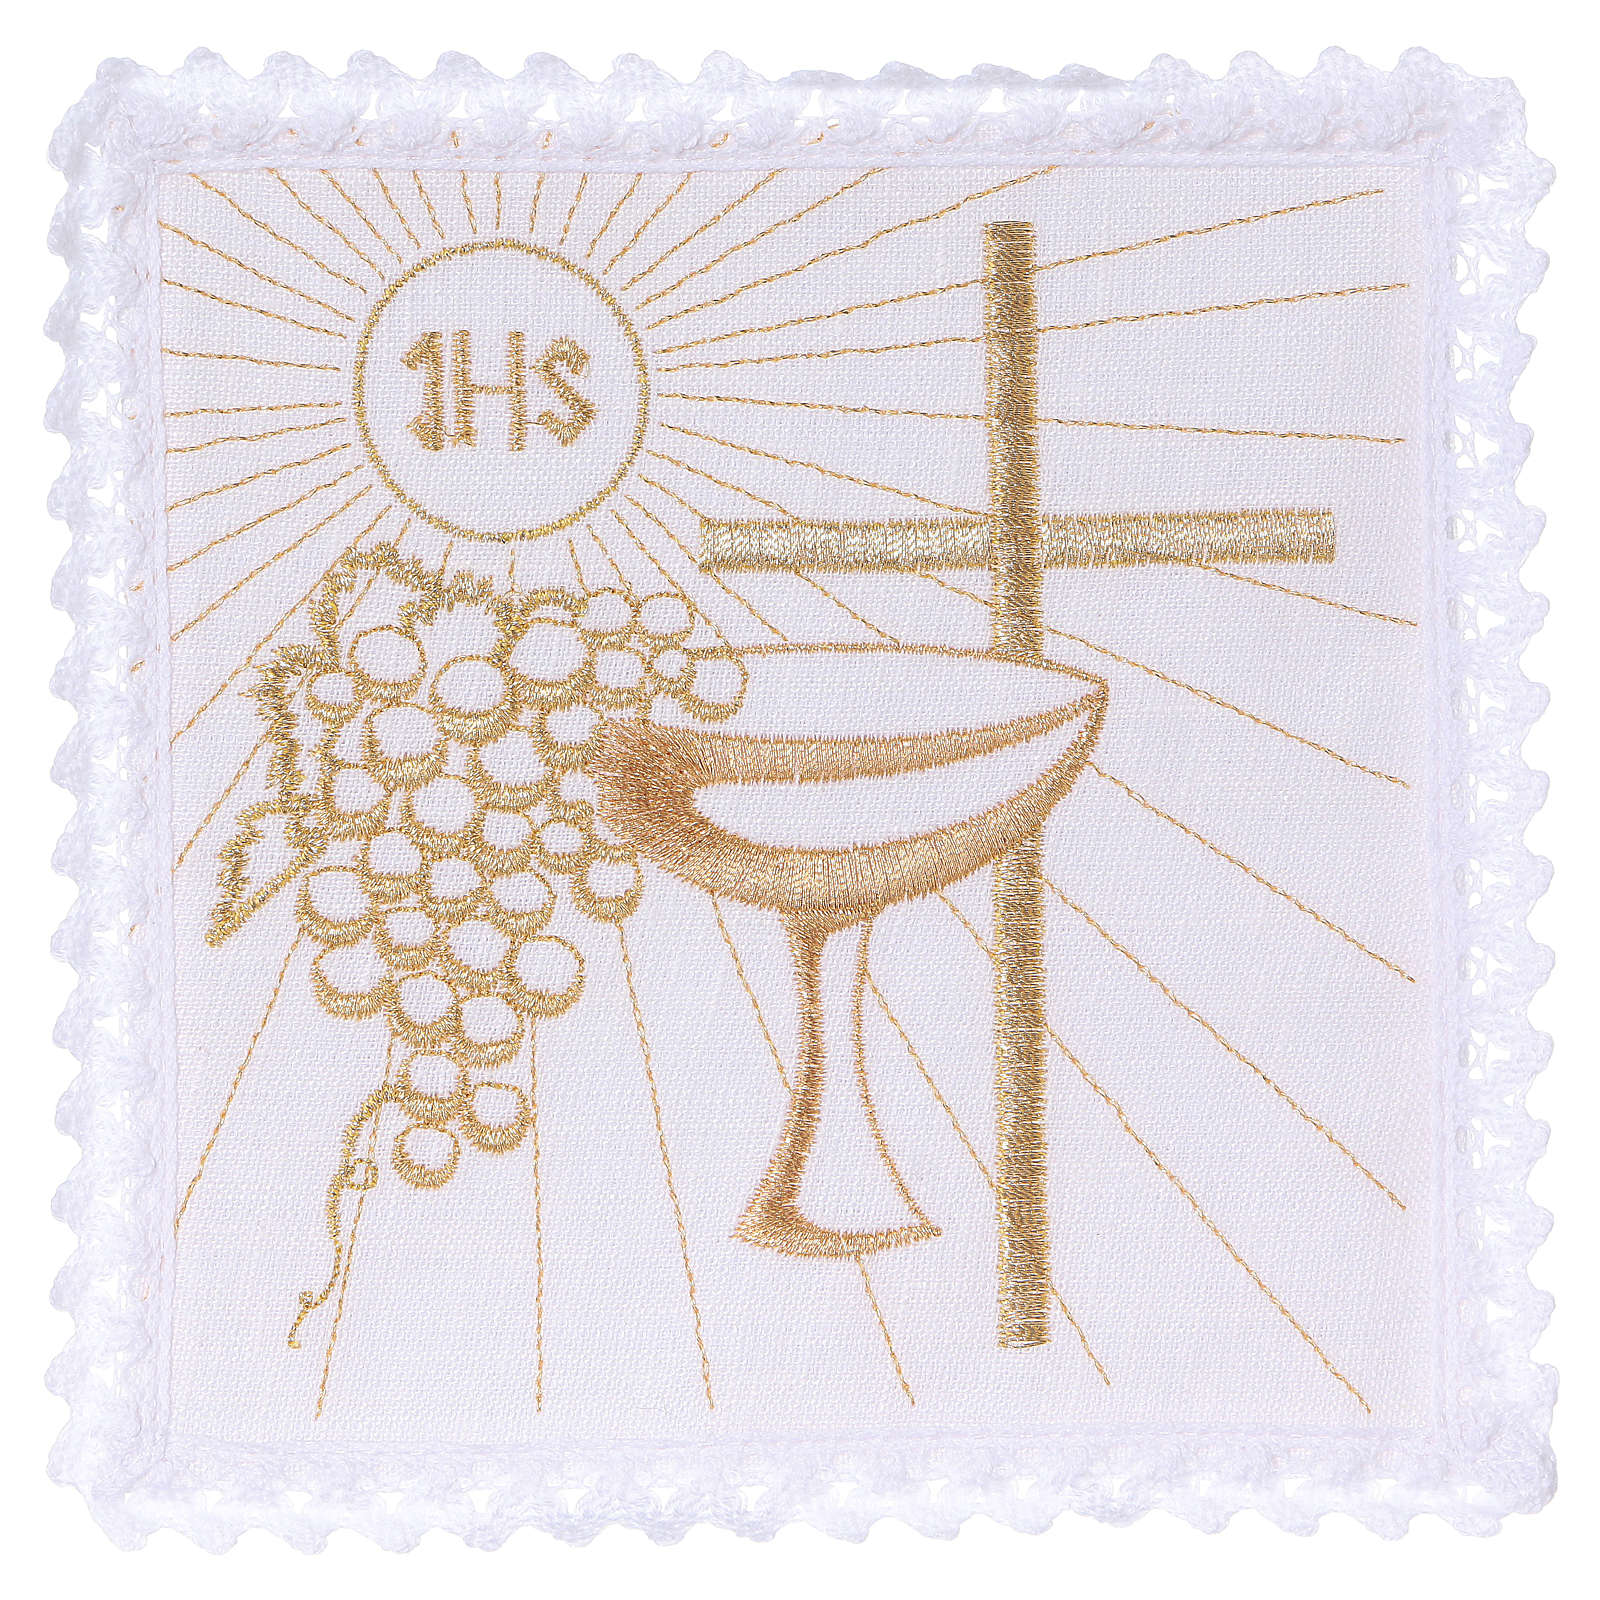 Altar cloth set, with cross, chalice and grapes 4